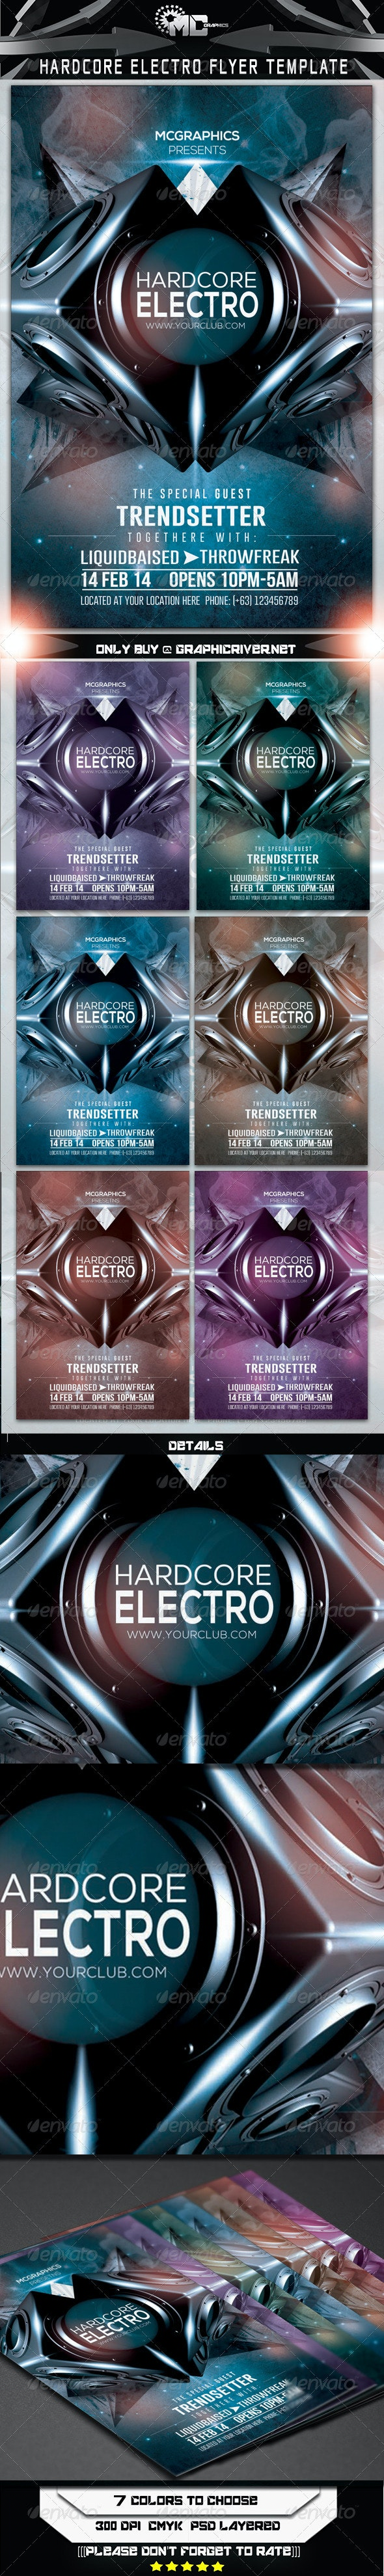 HardCore Electro Flyer Template - Clubs & Parties Events